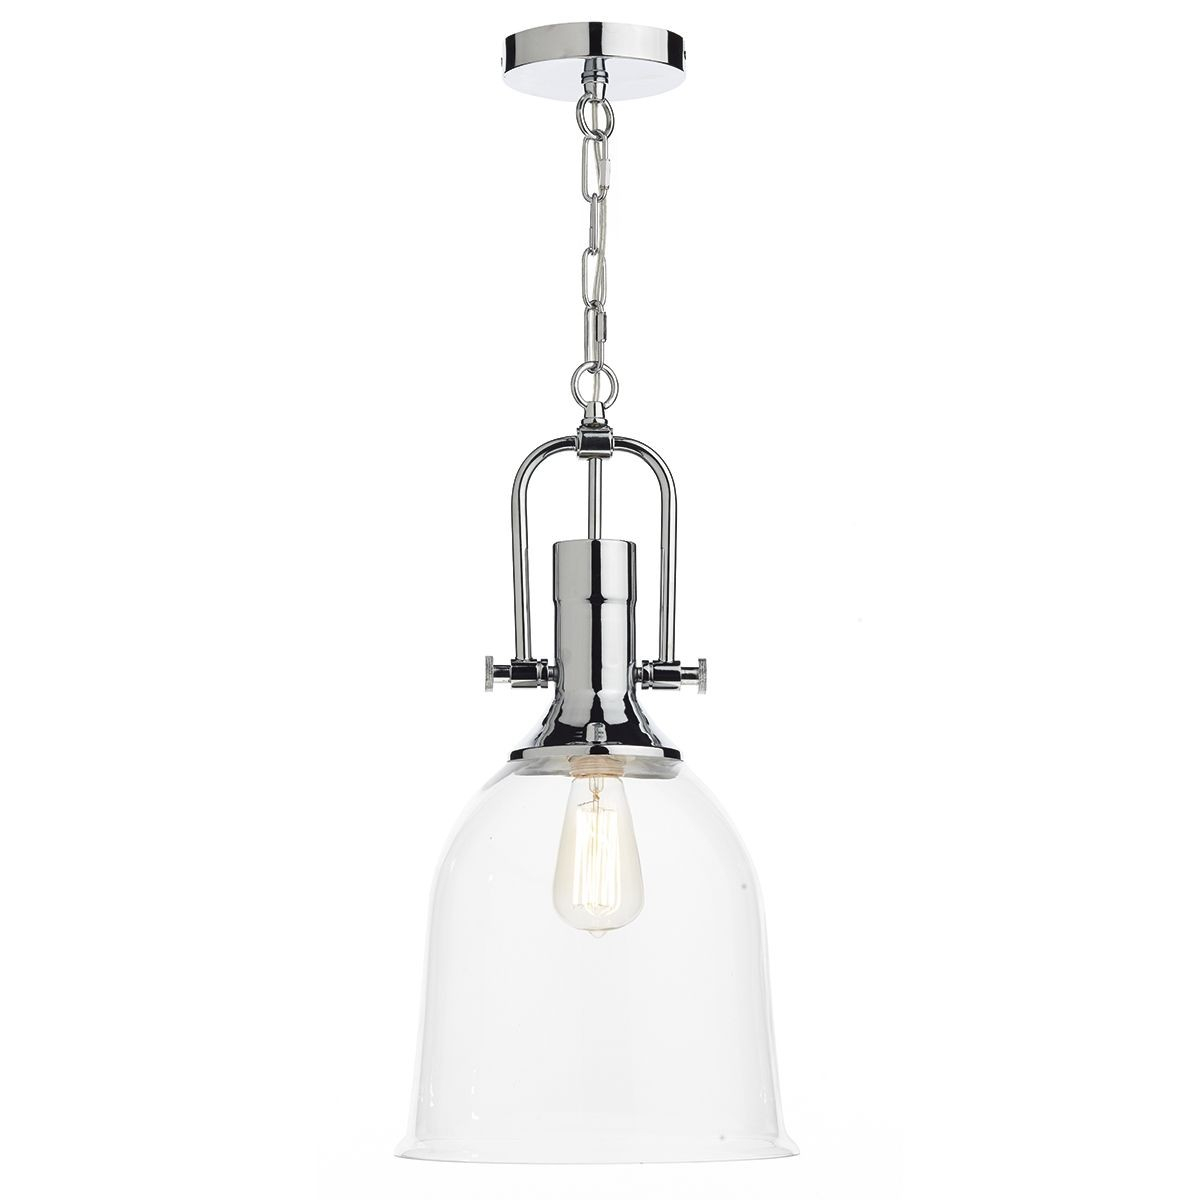 Dar Nolan 1 Light Pendant Polished Chrome Throughout Nolan 1 Light Lantern Chandeliers (Gallery 4 of 30)